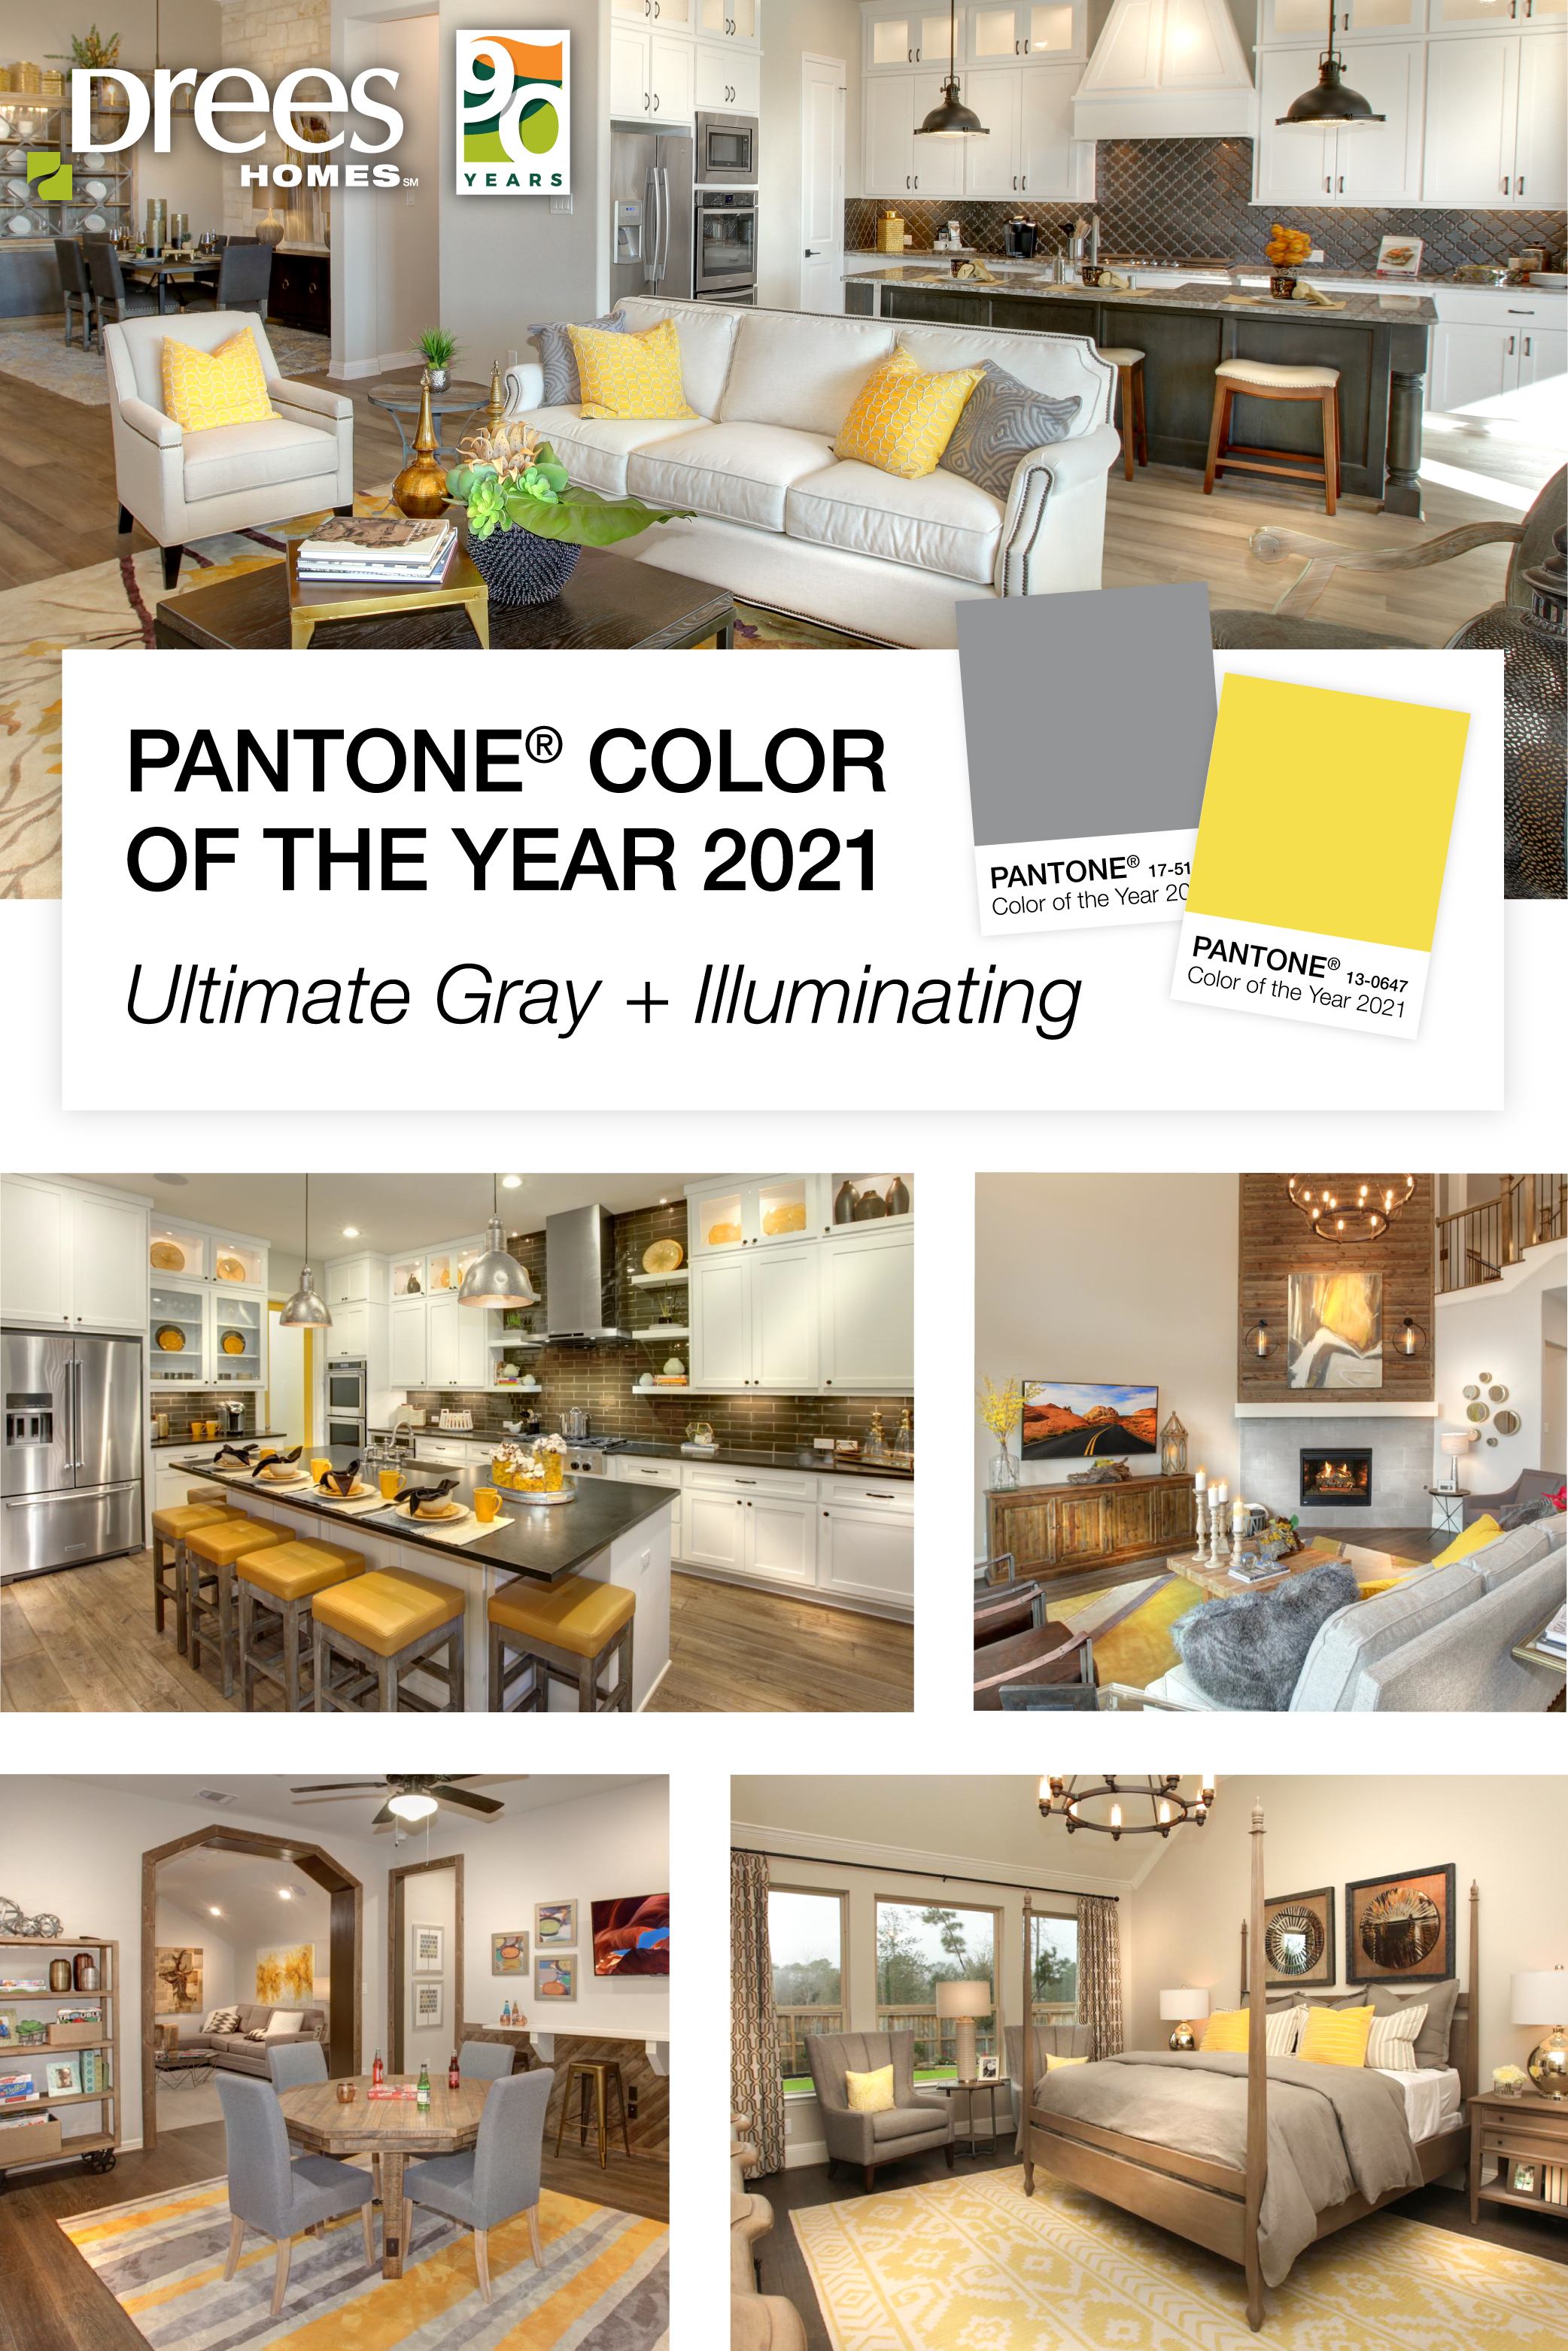 Pinterest Pin | Drees Homes | Pantone Color of the Year 2021